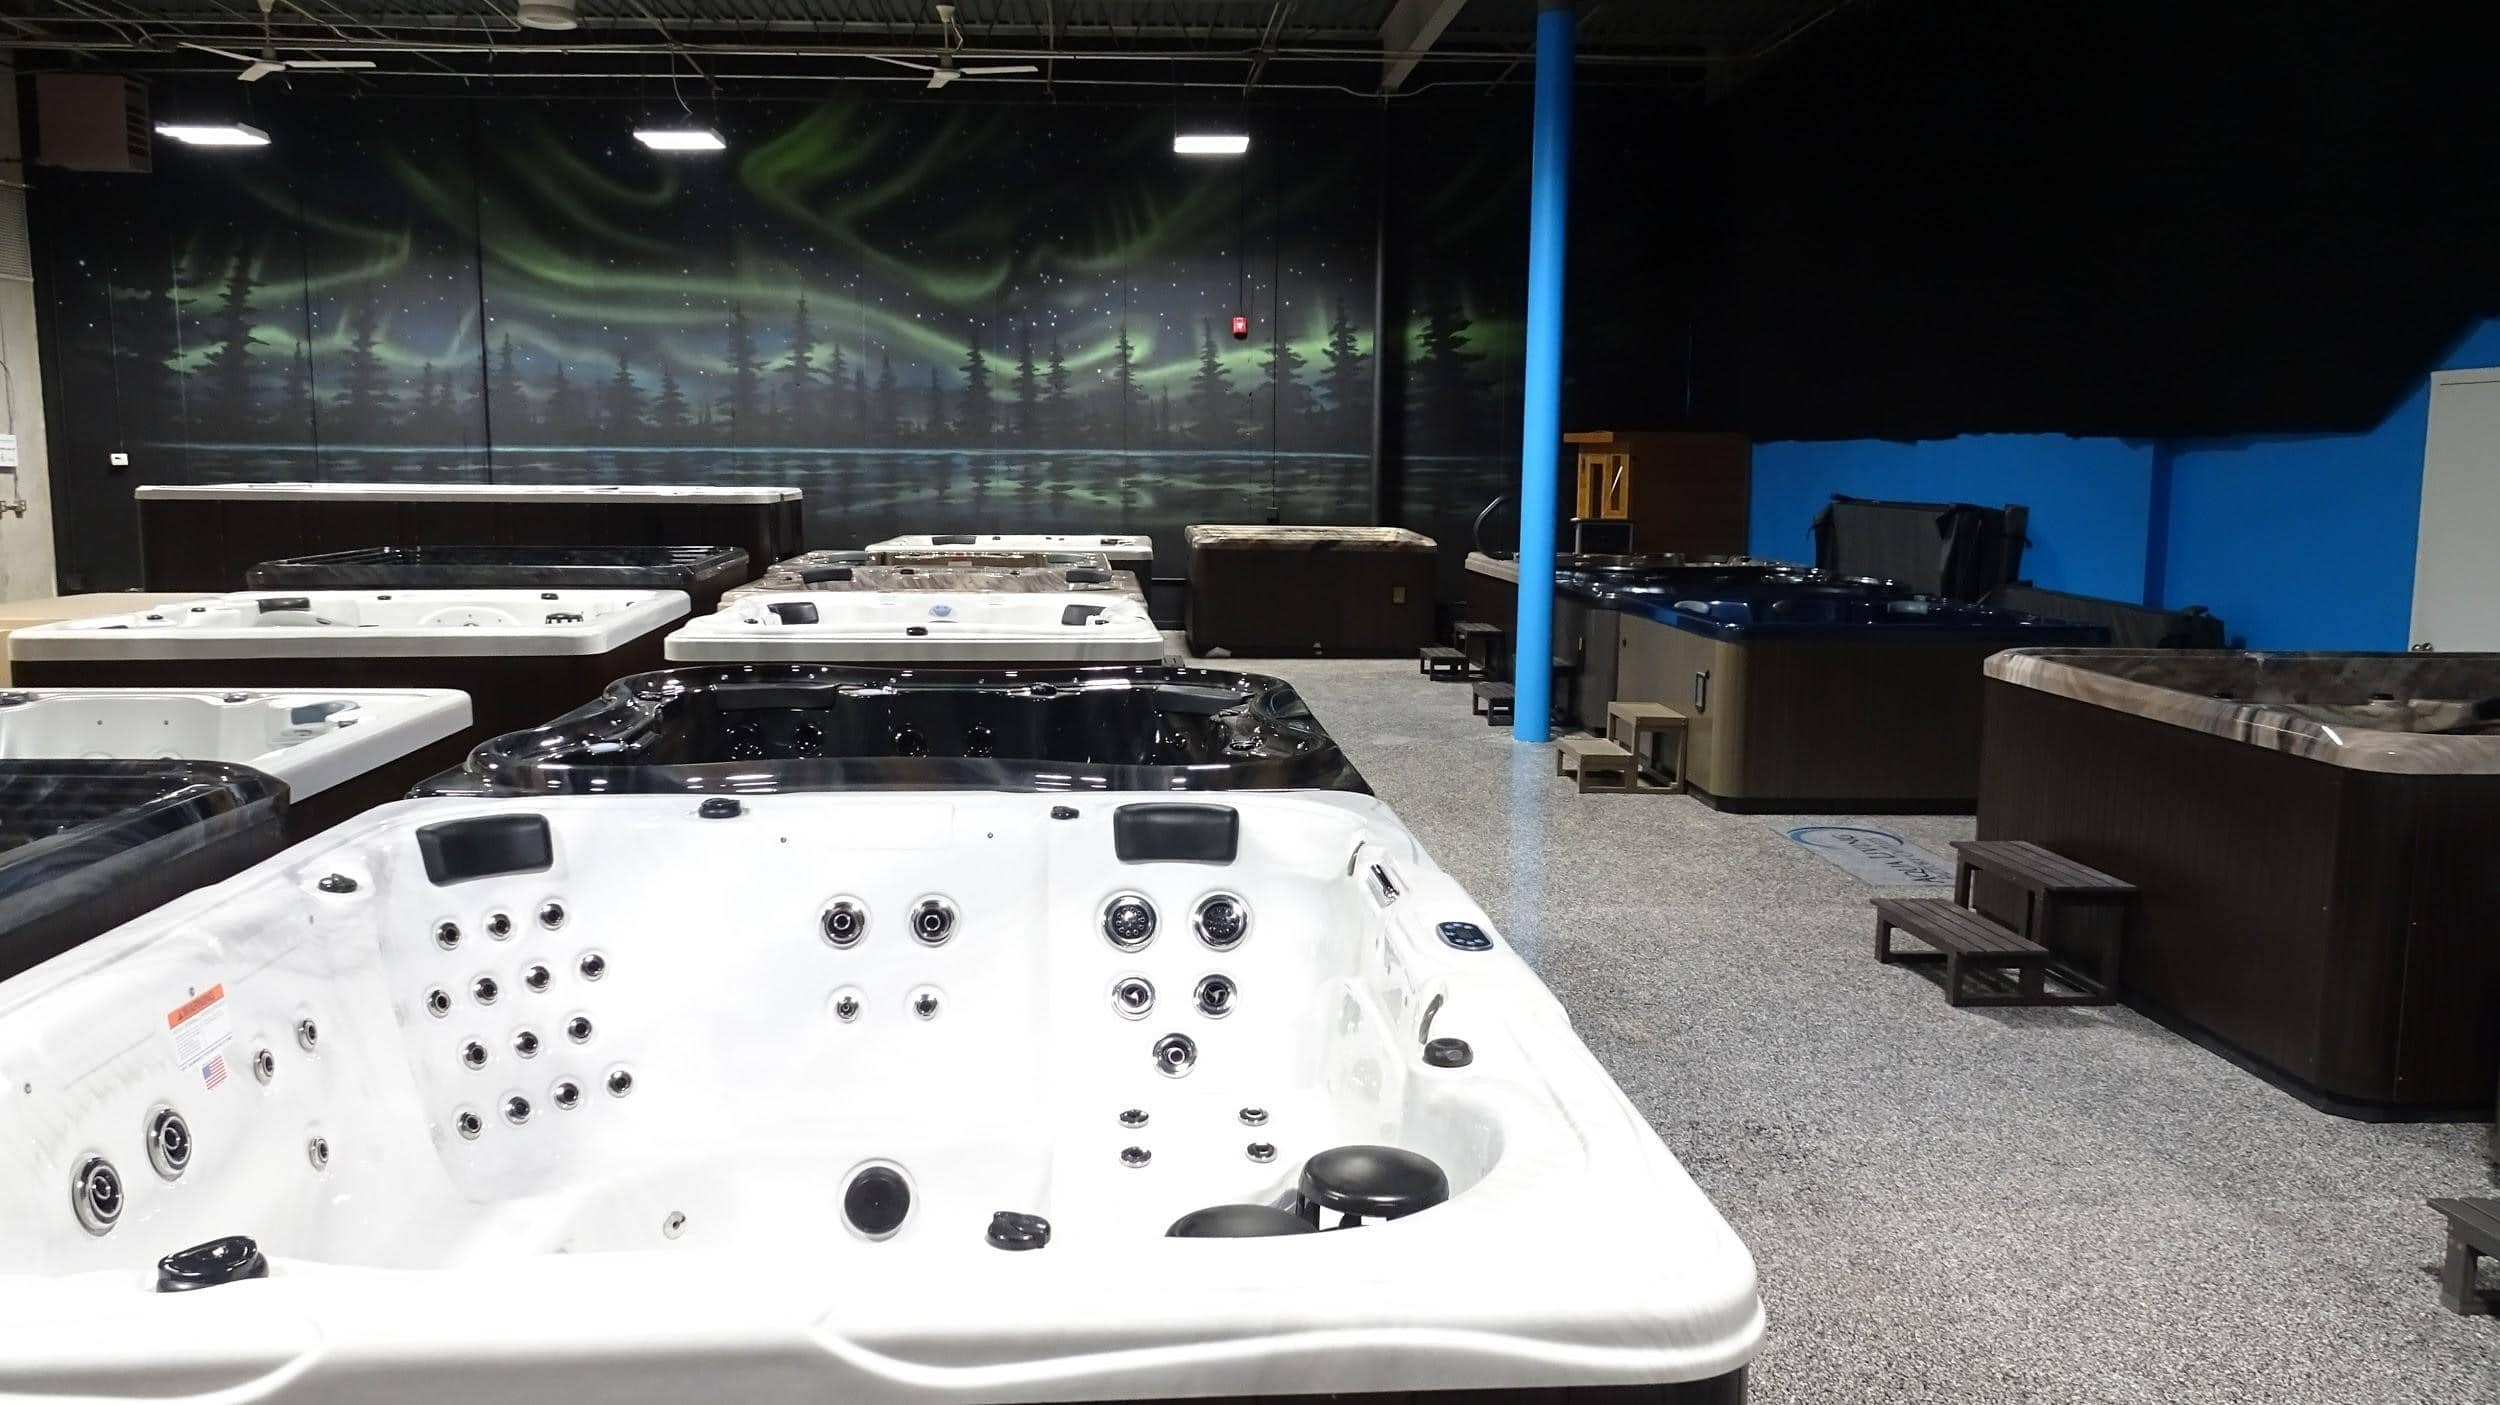 Urbandale Hot Tubs for sale